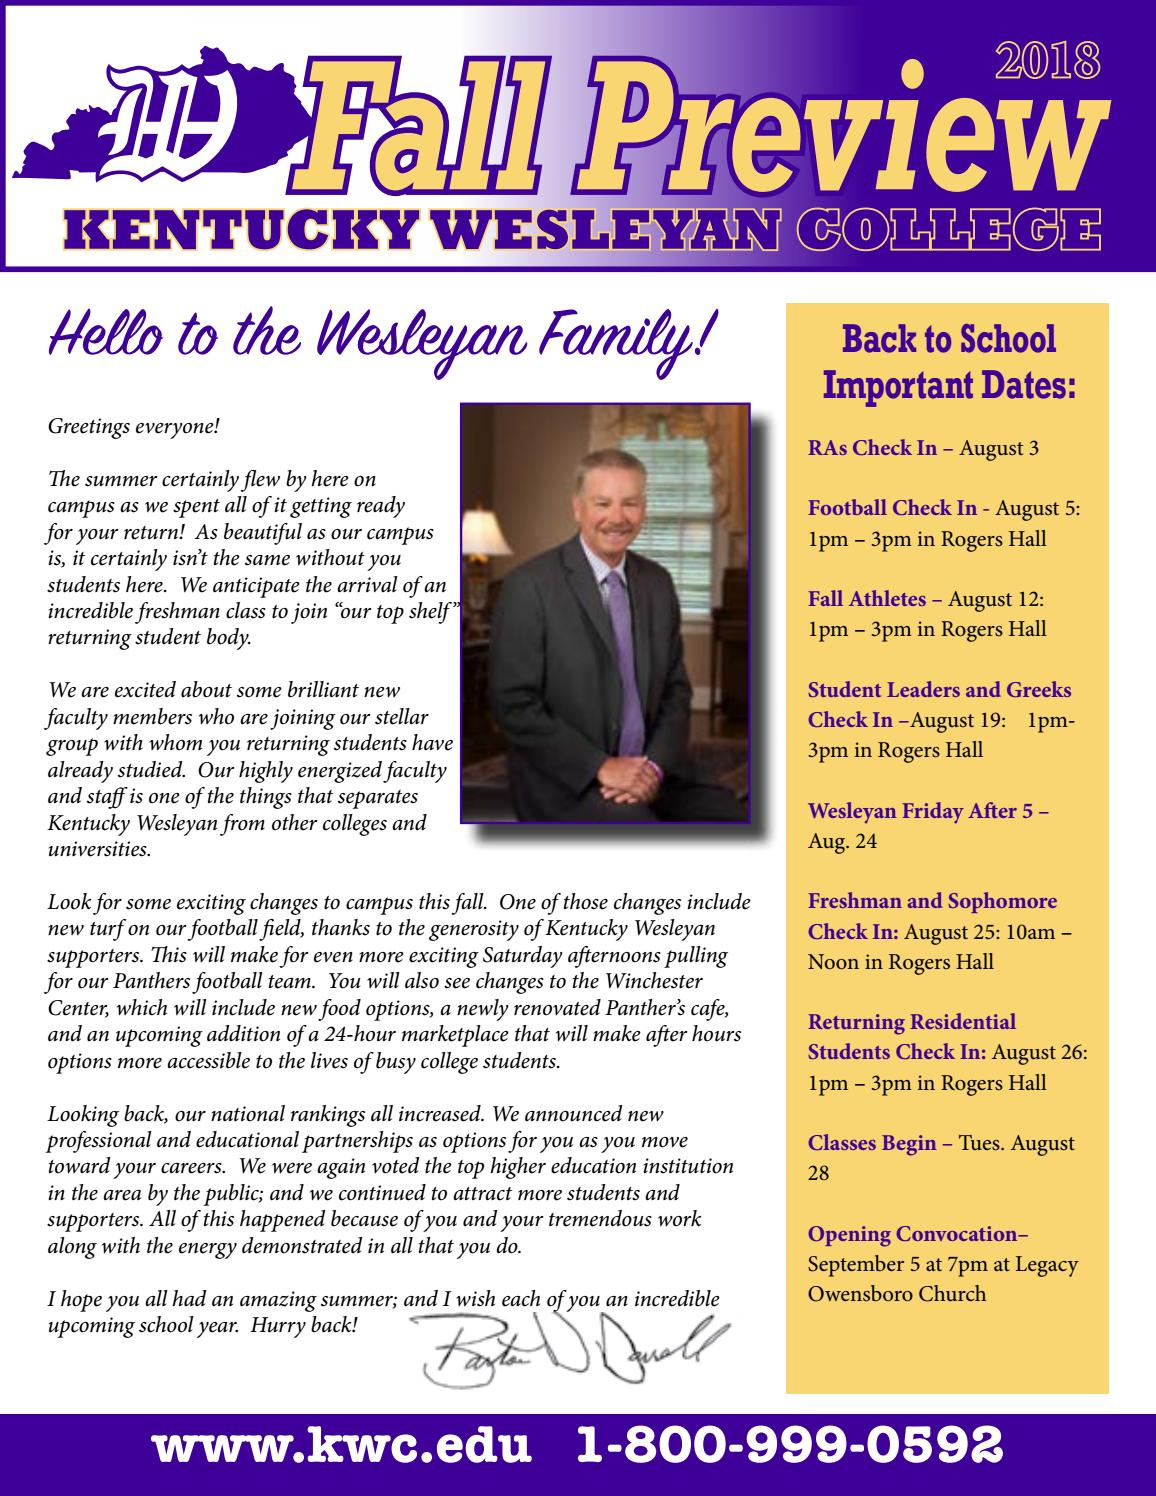 2018 Fall Preview By Kentucky Wesleyan College Issuu